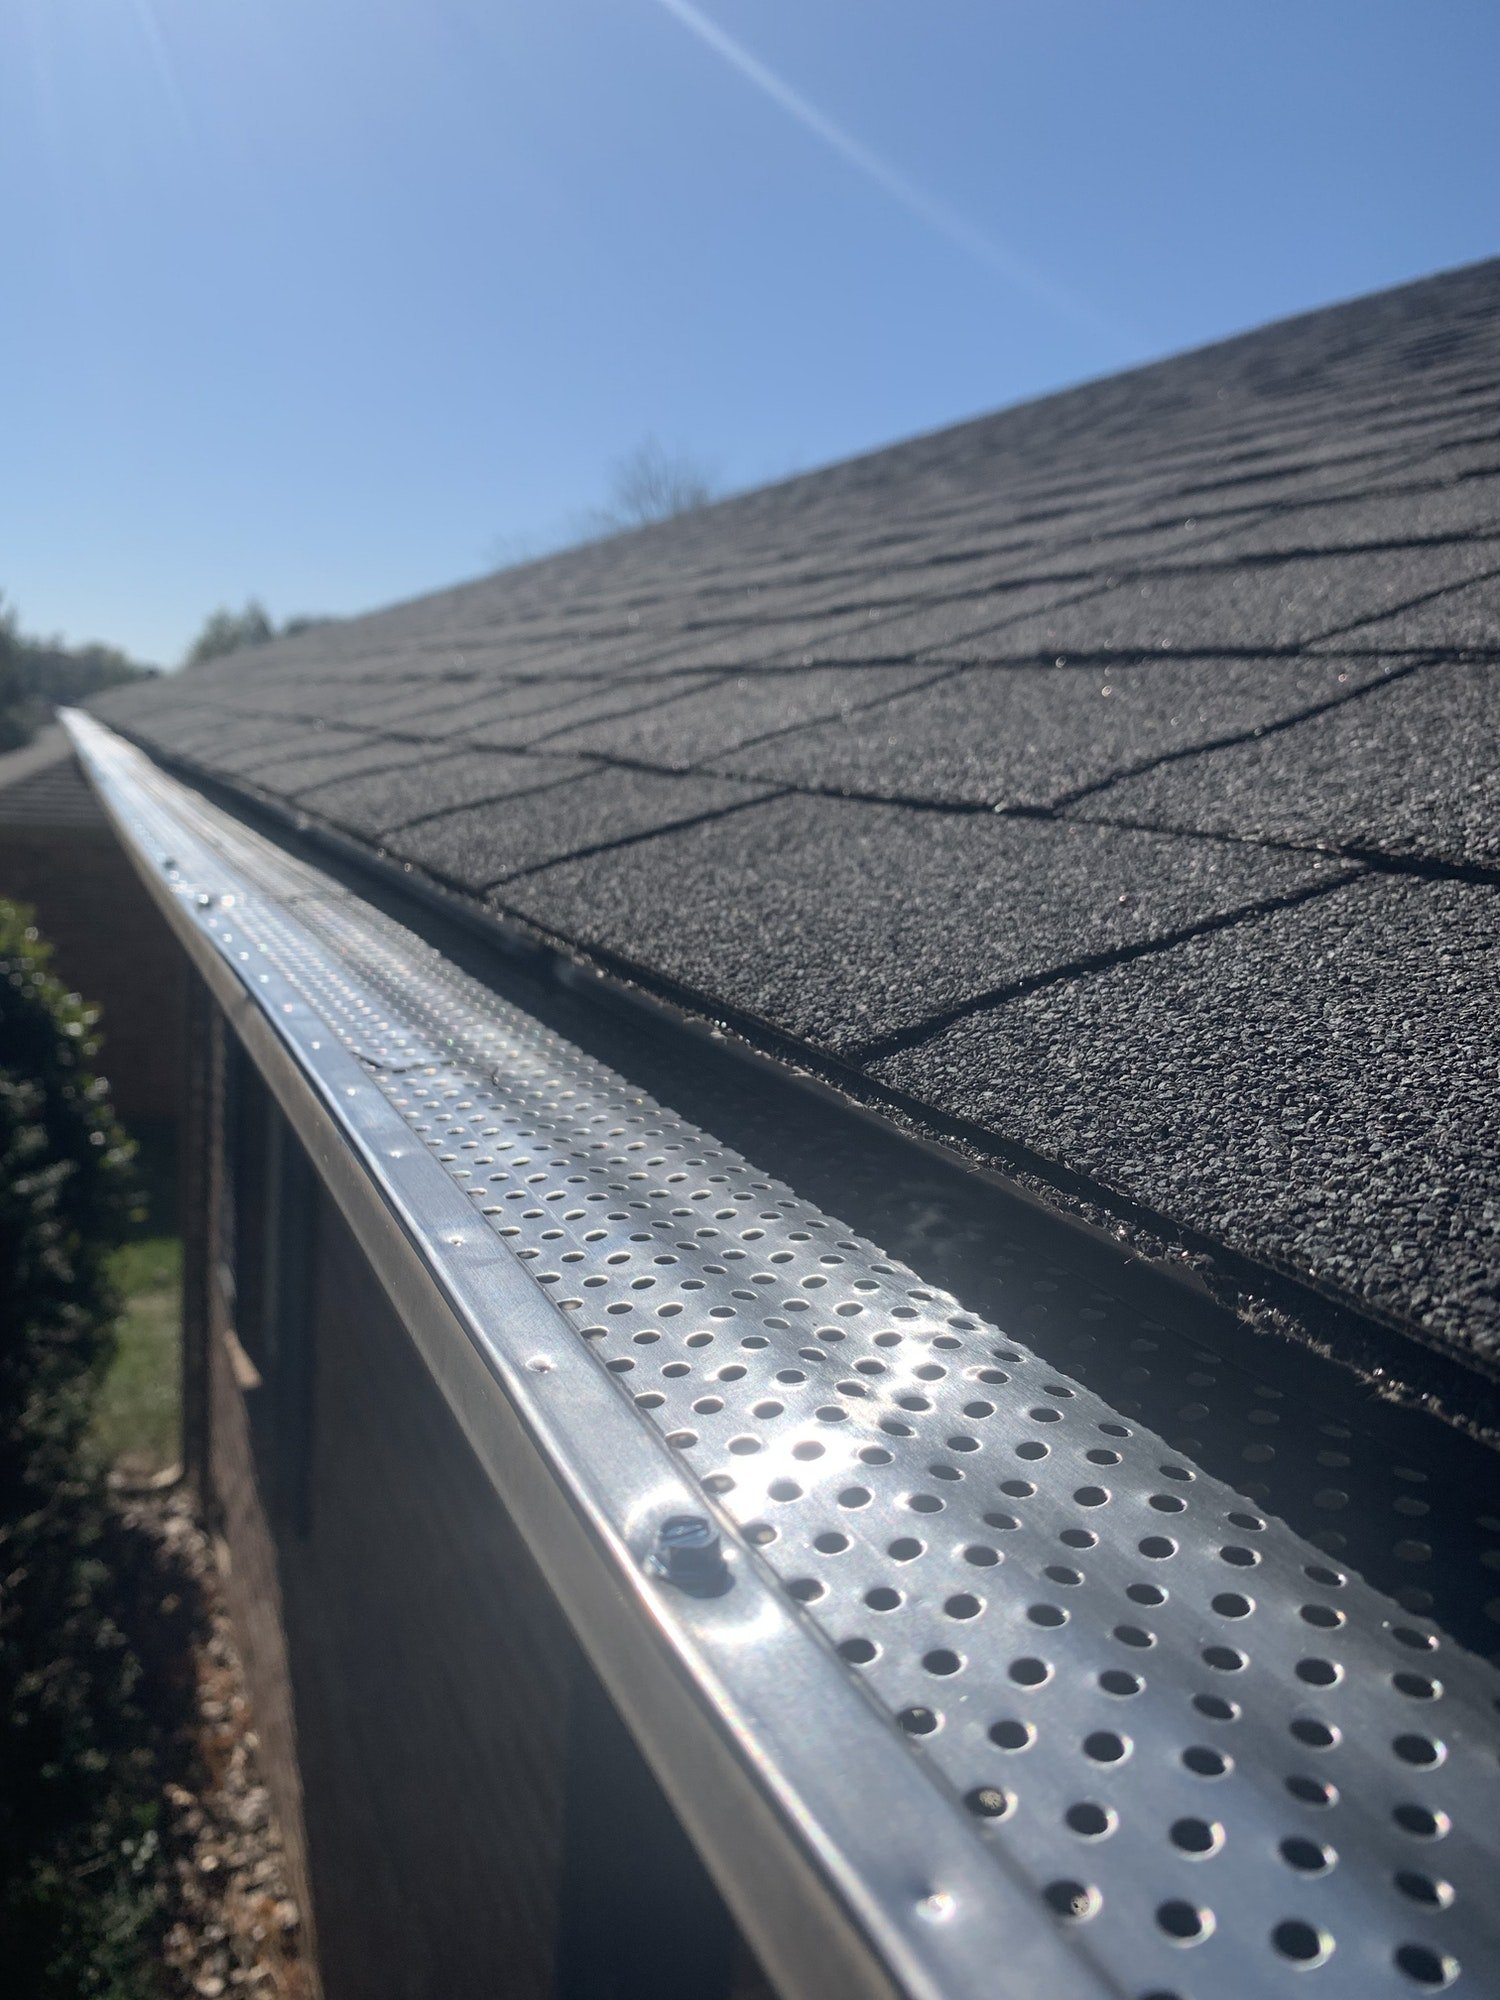 Roof of a house showing gutter and gutter guard protection against leaves